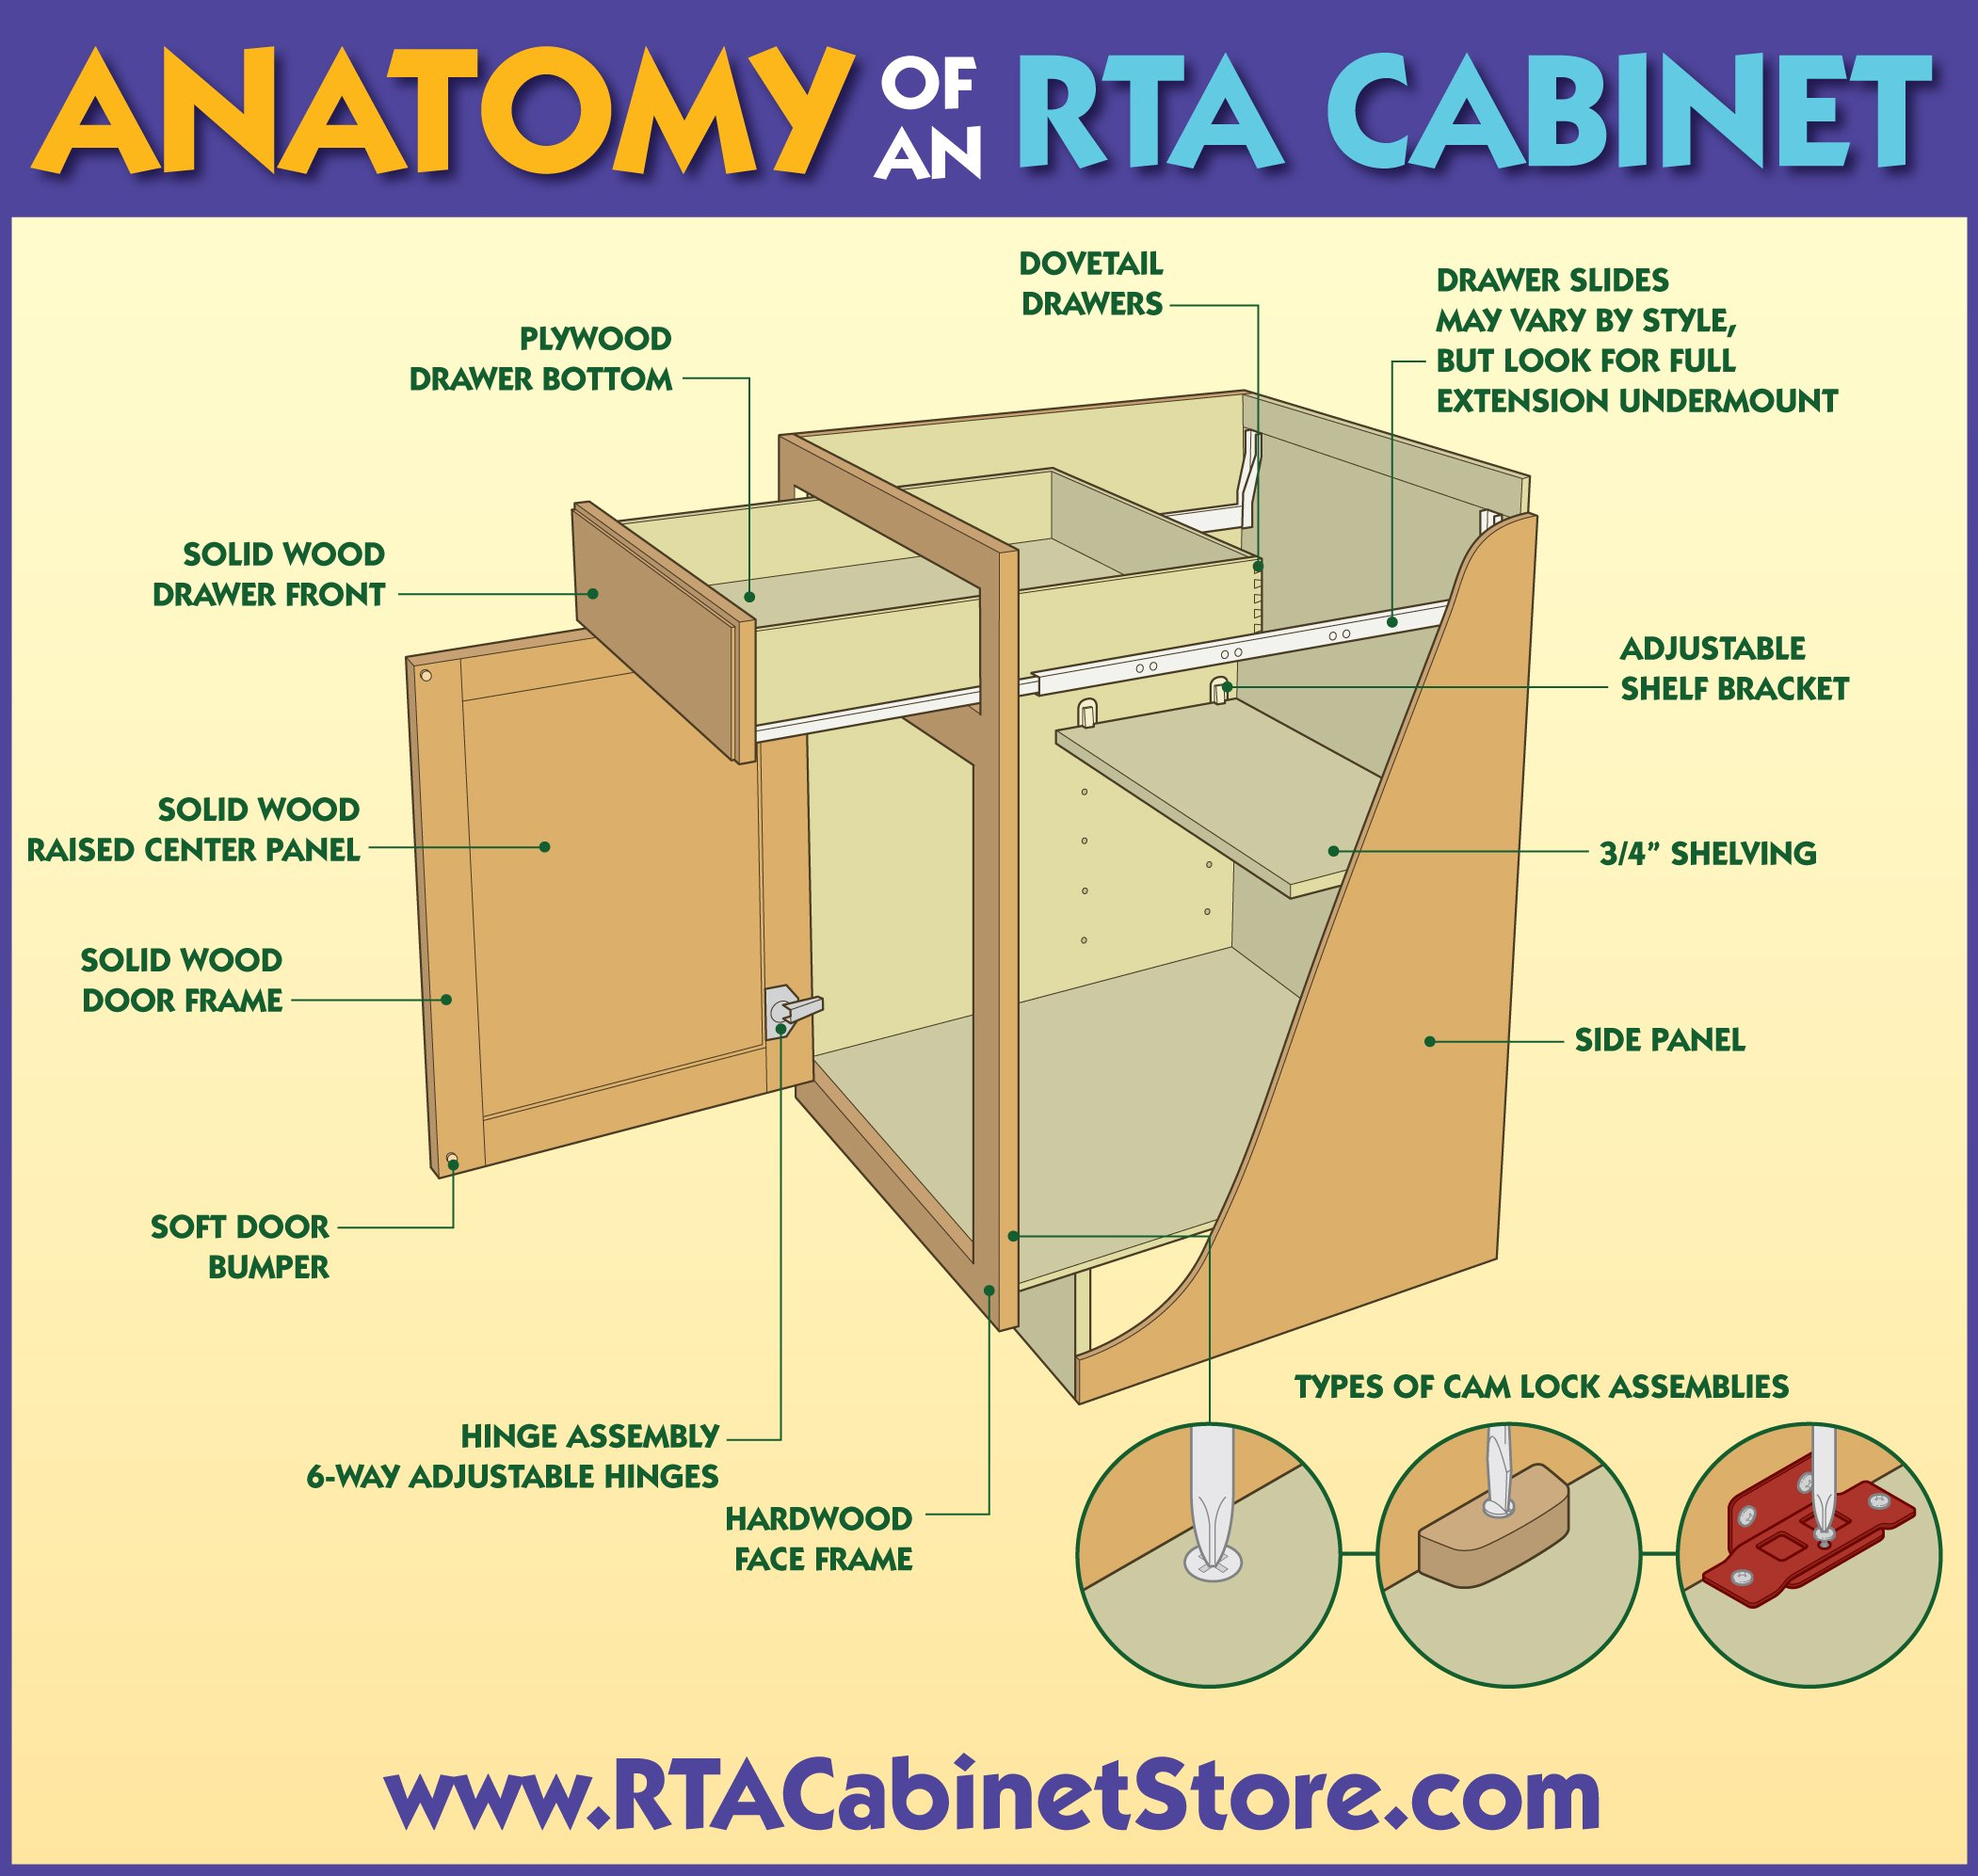 anatomy of an rta cabinet   u2039 anatomy of an rta cabinet   rta kitchen cabinets  rh   rtacabinetstore com